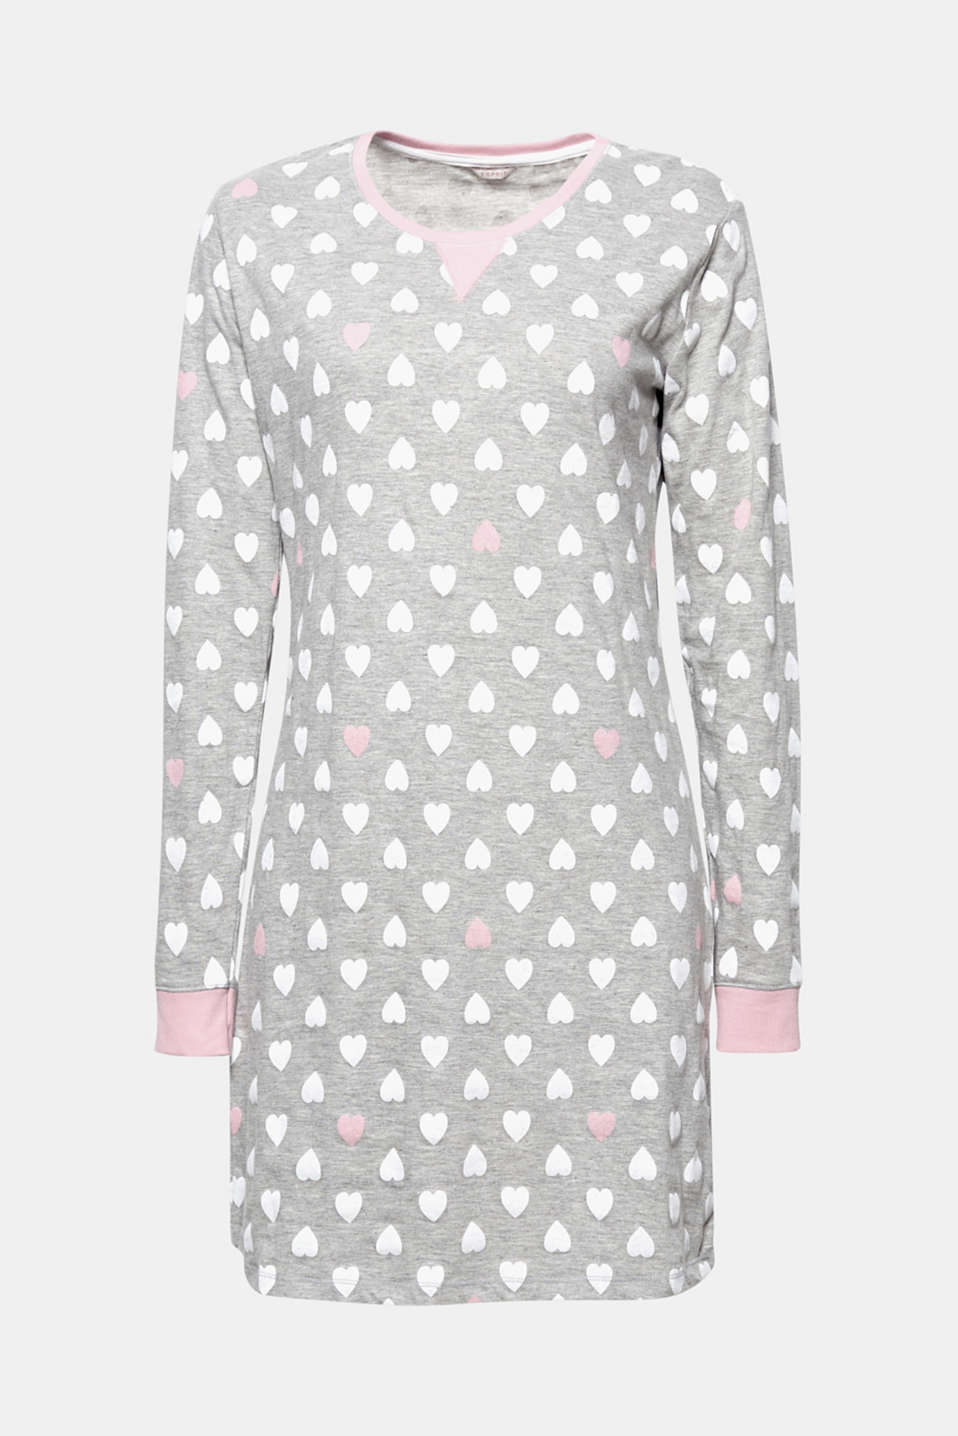 A nightshirt that you will love! This nightshirt made of blended cotton impresses with its fine heart print.